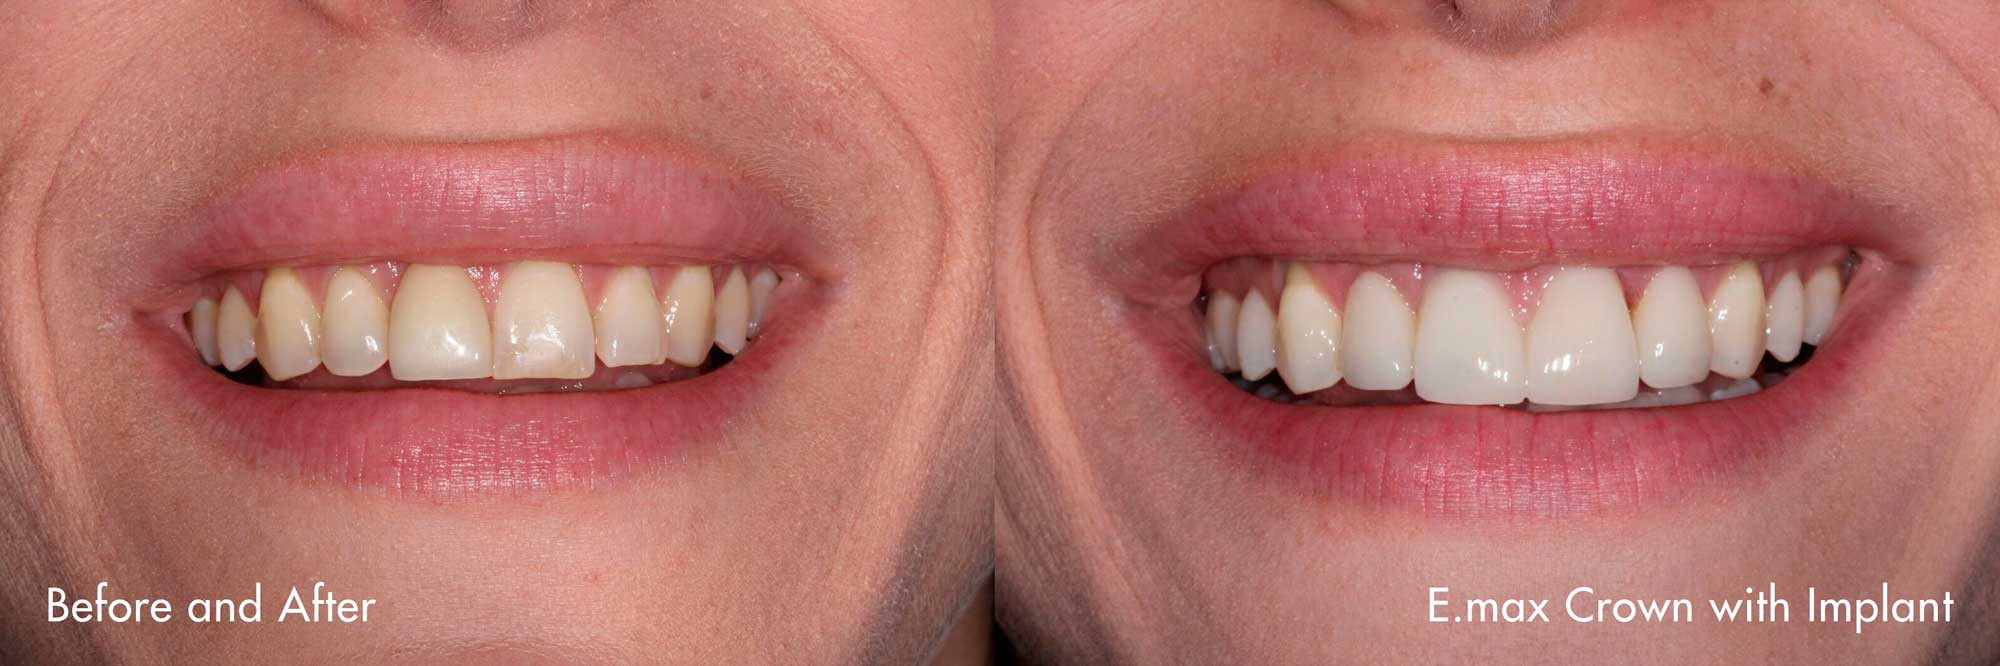 Smile created by Dr. Claude Sidi.